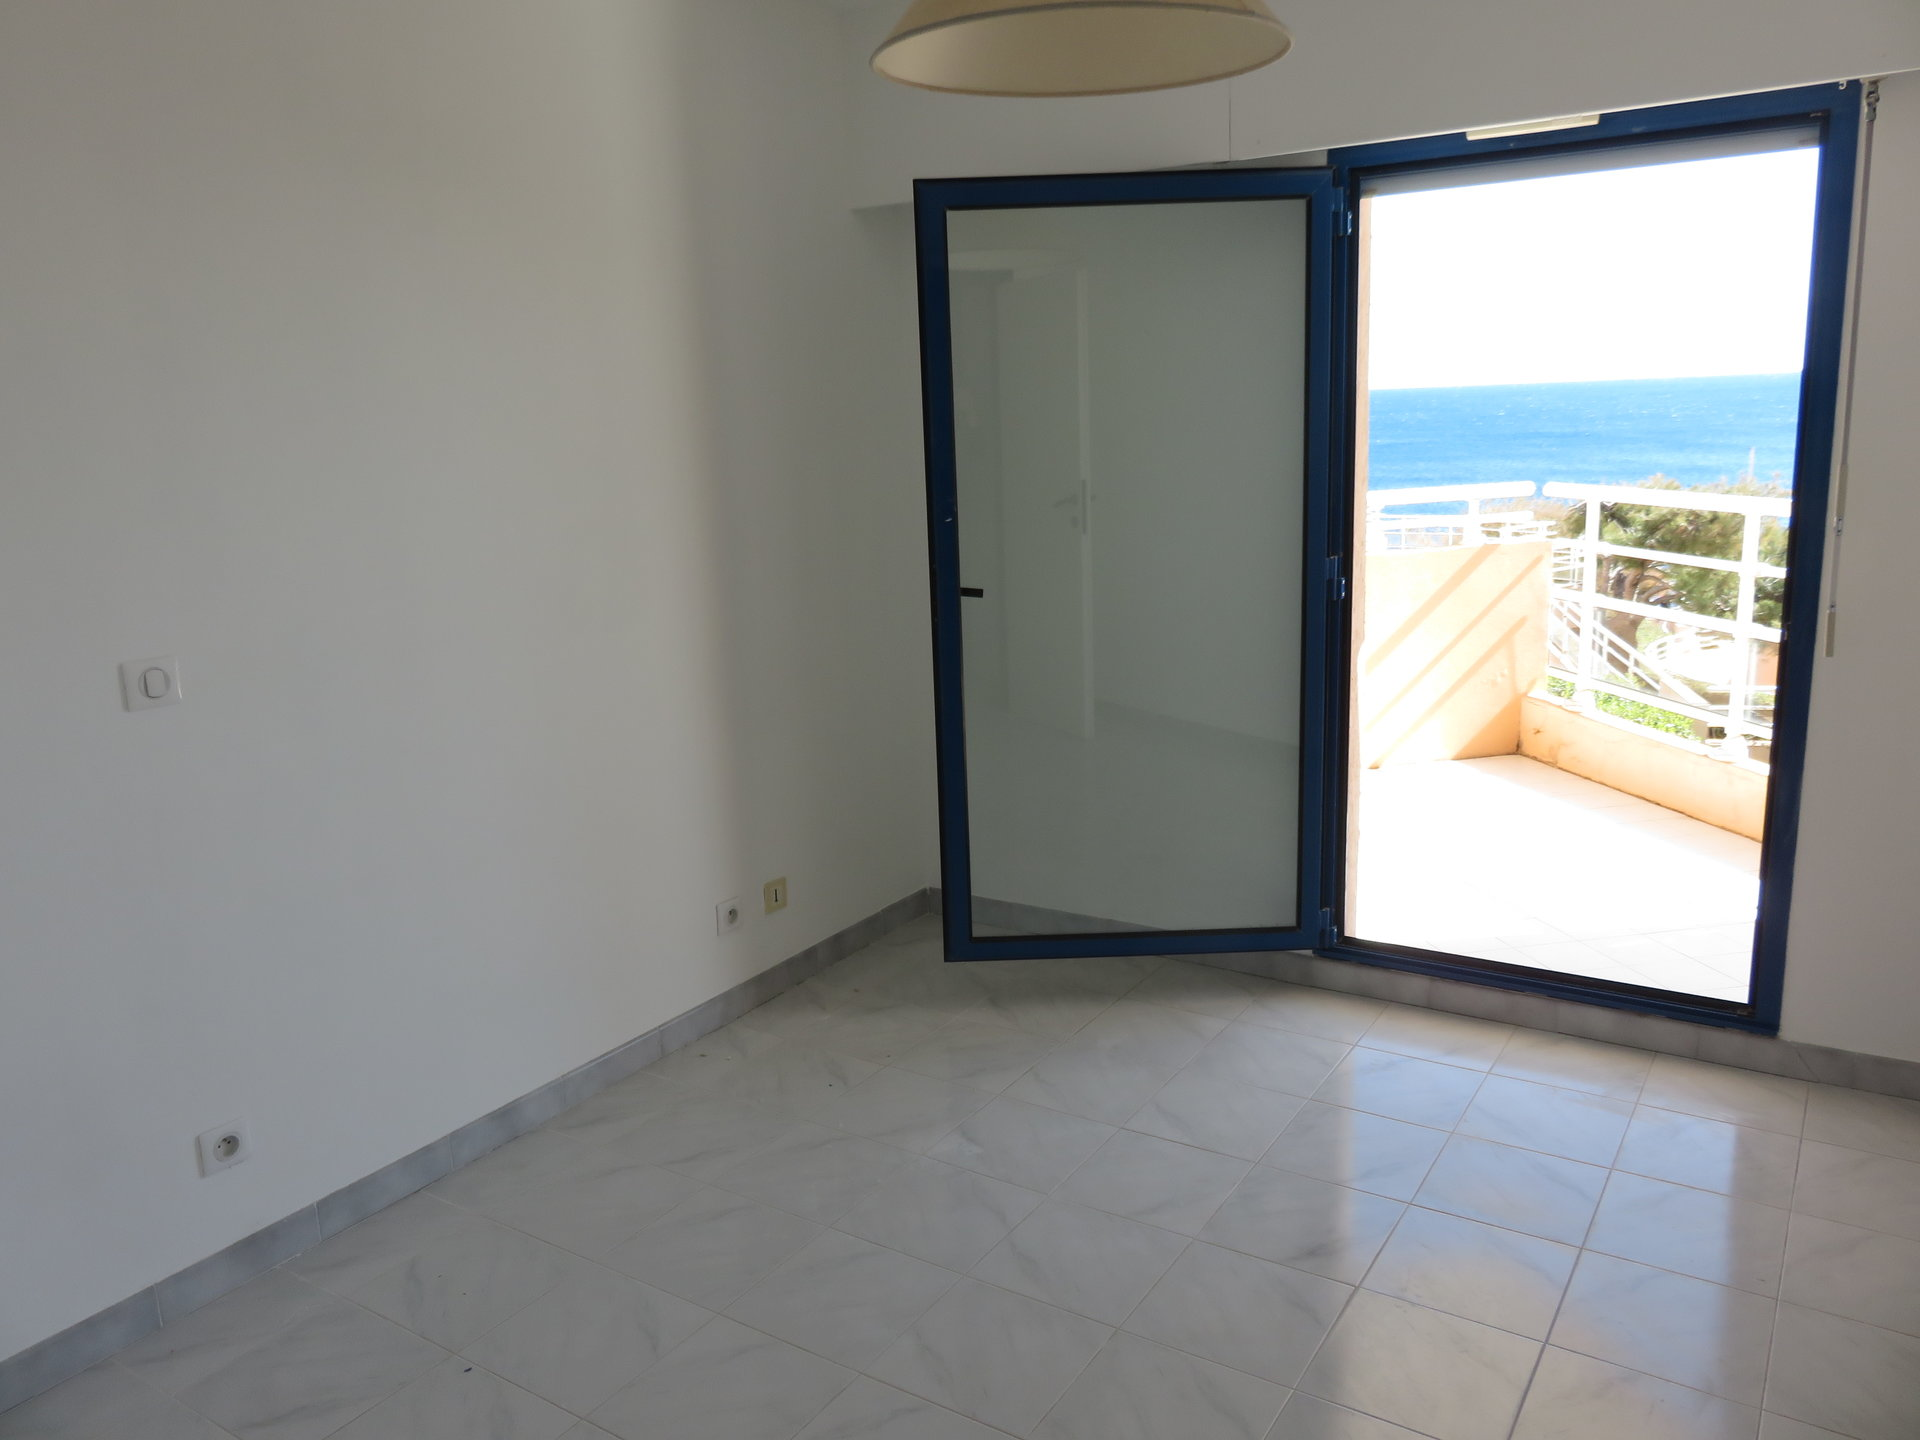 2 room apartment with sea view, terrace, parking